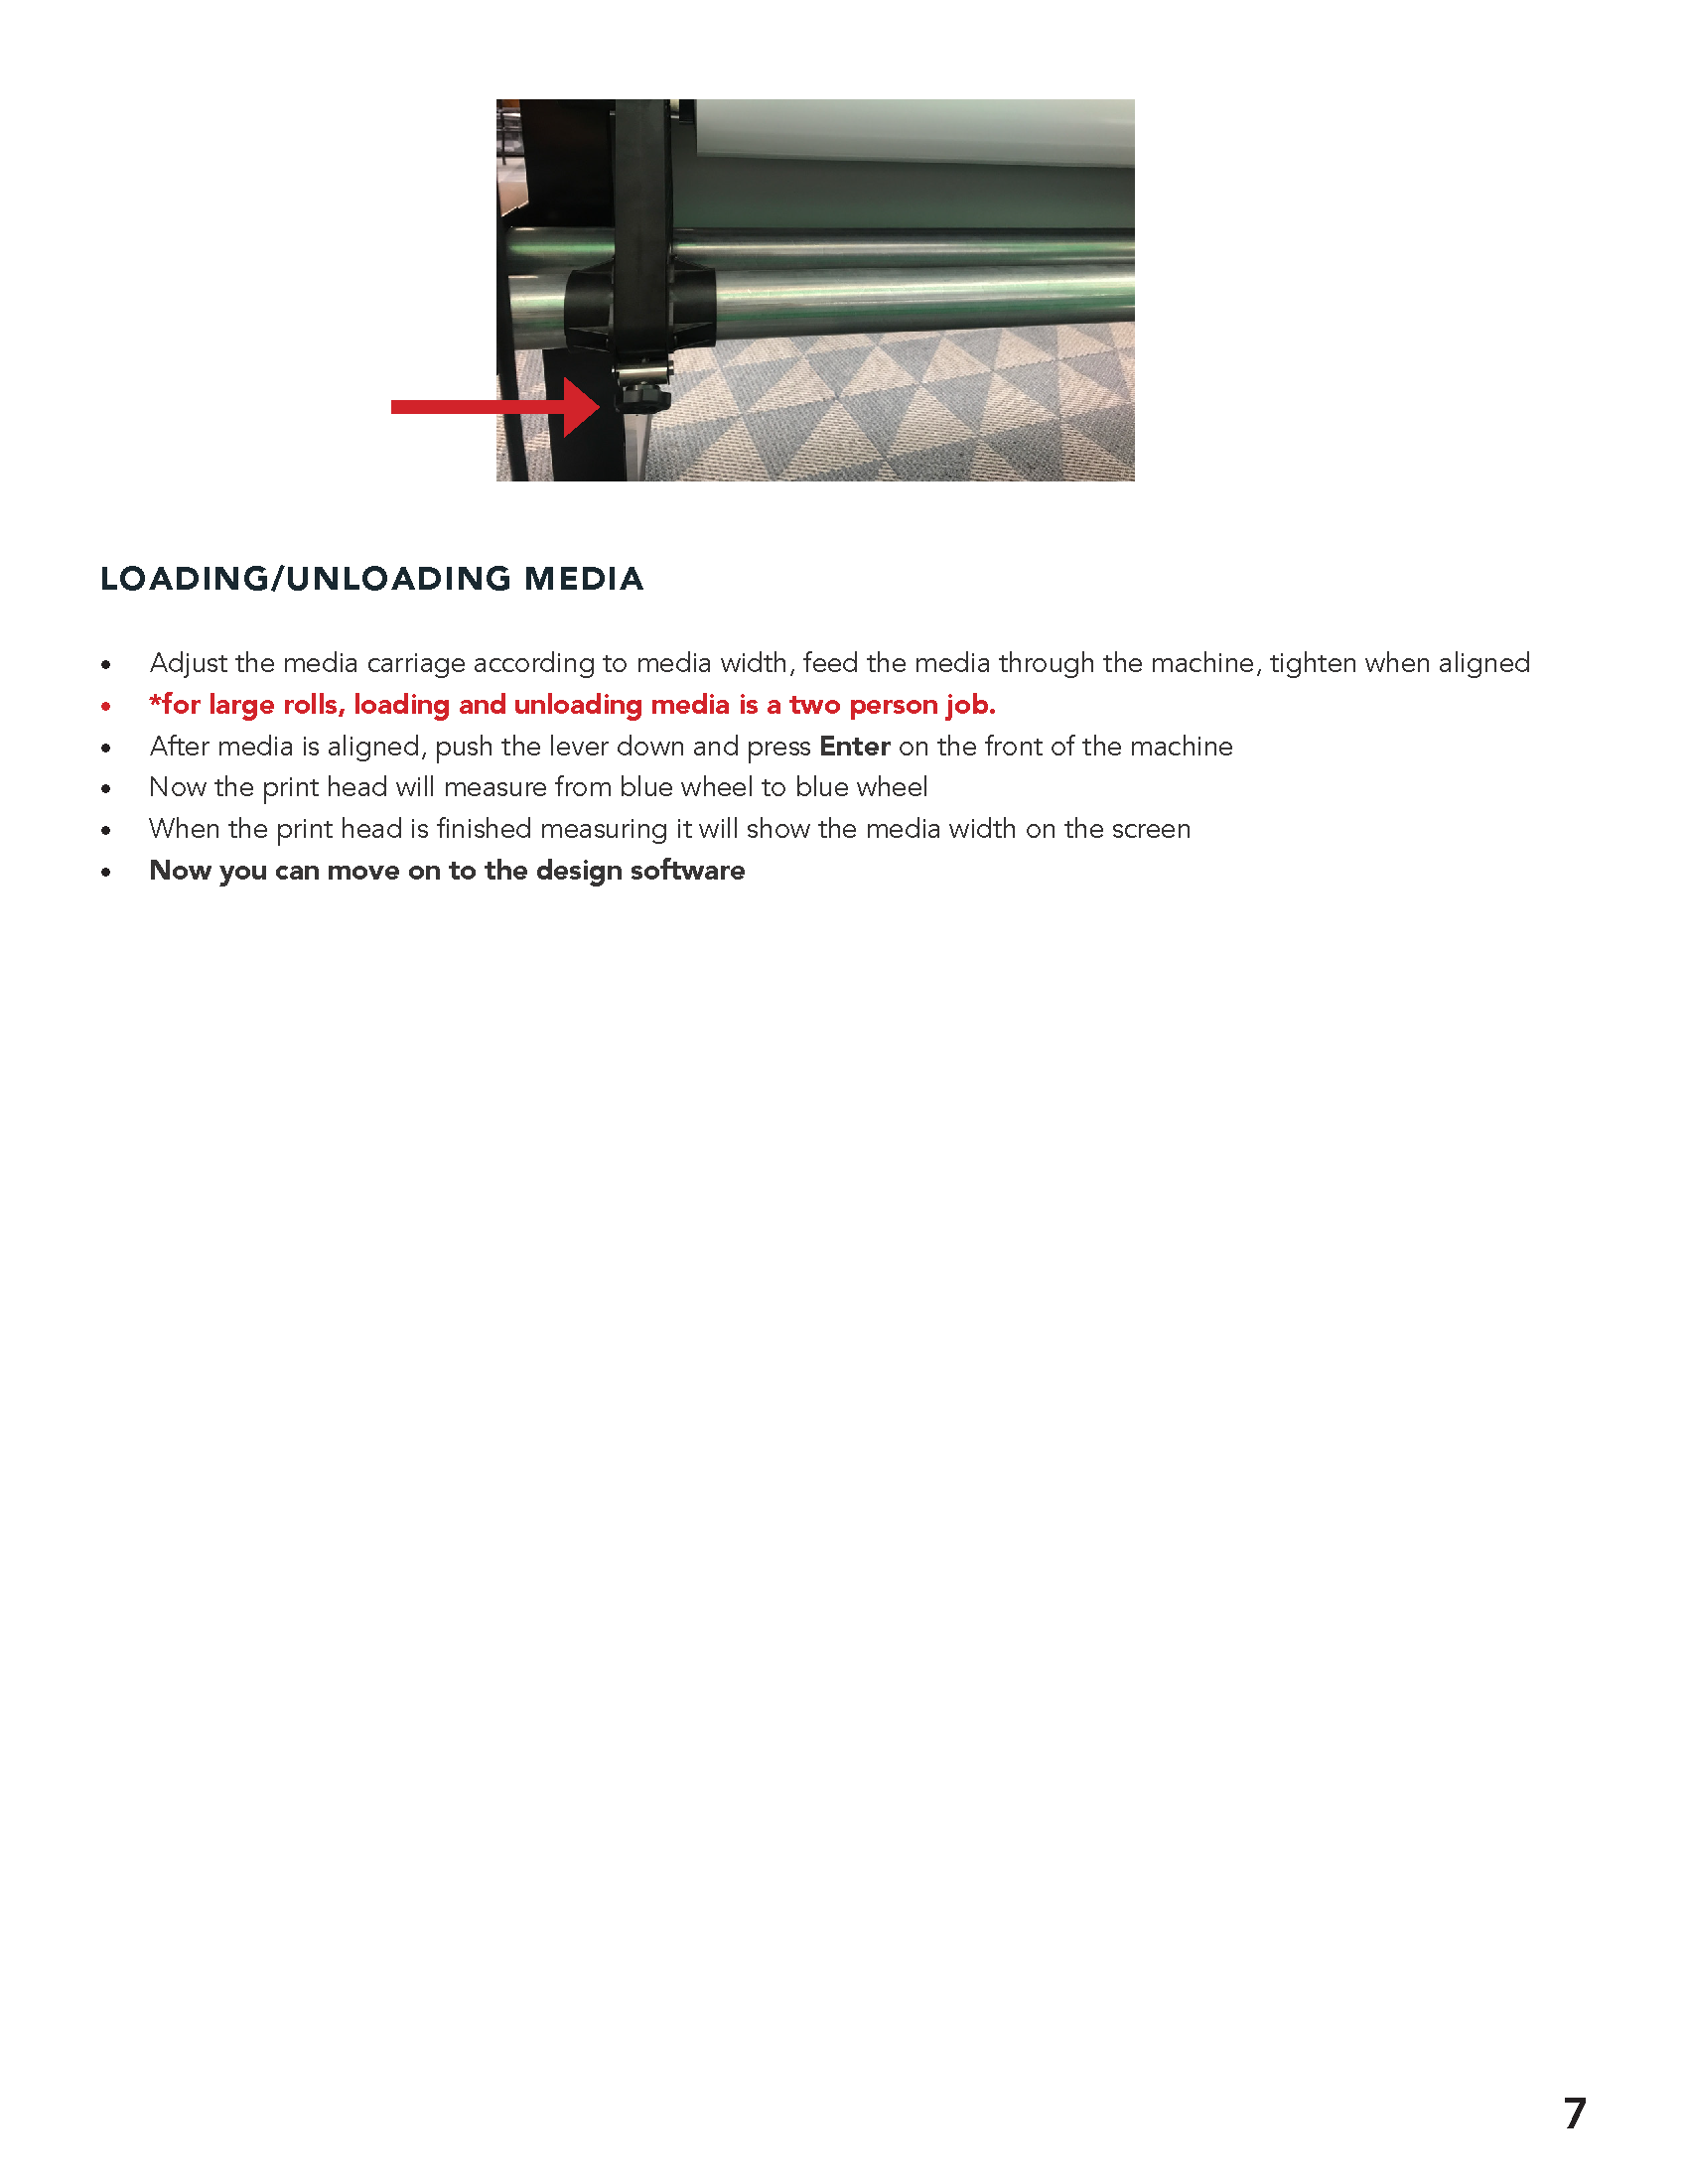 Training_Manual_Template_Page_07.png